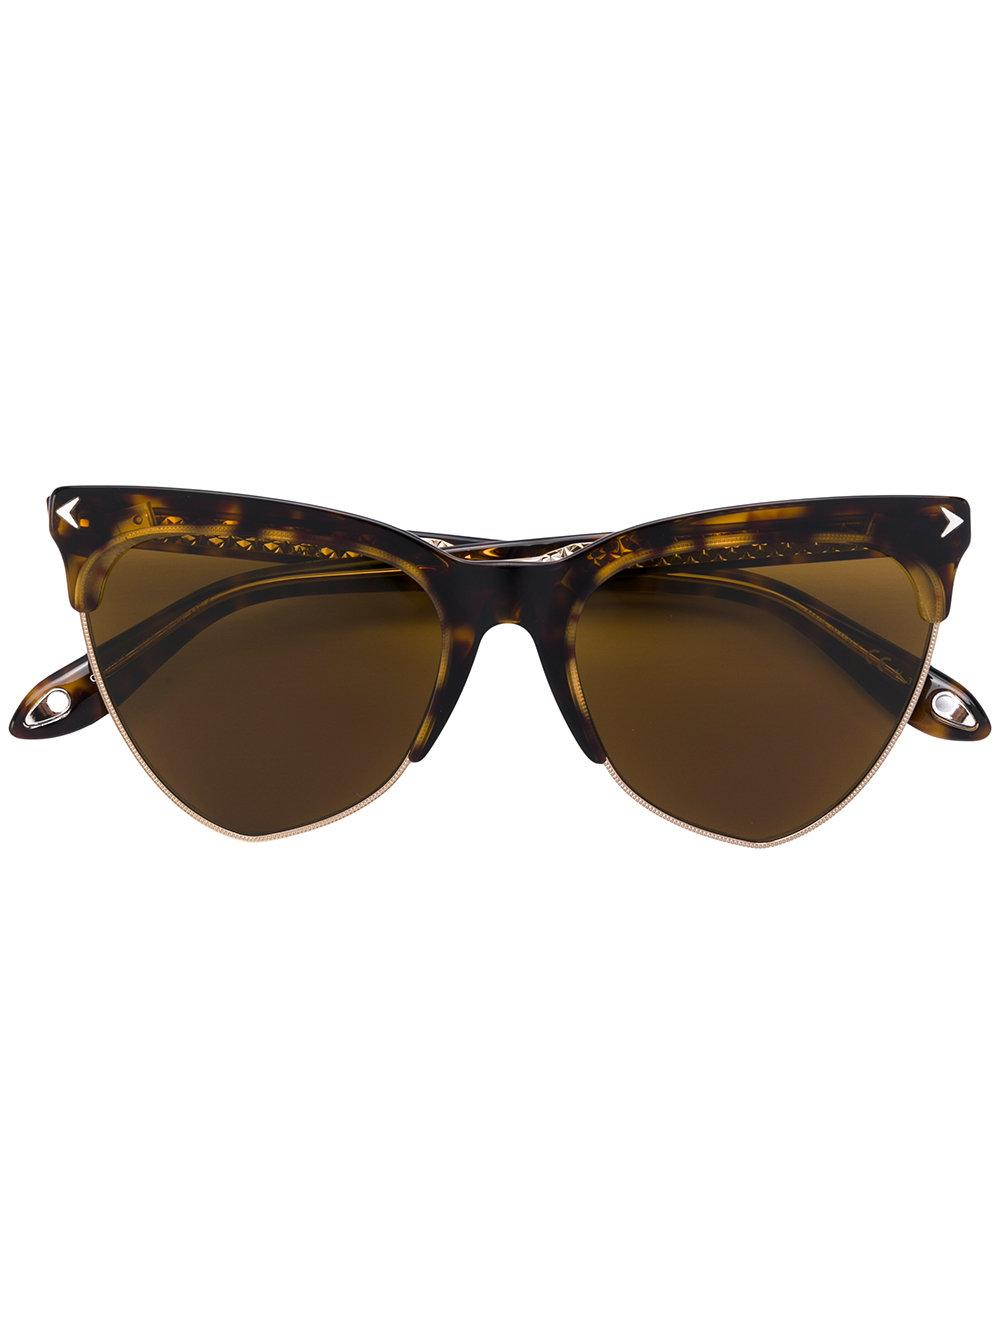 18464f1b1844 Givenchy Eyewear Cat Eye Tinted Sunglasses - Brown | ModeSens